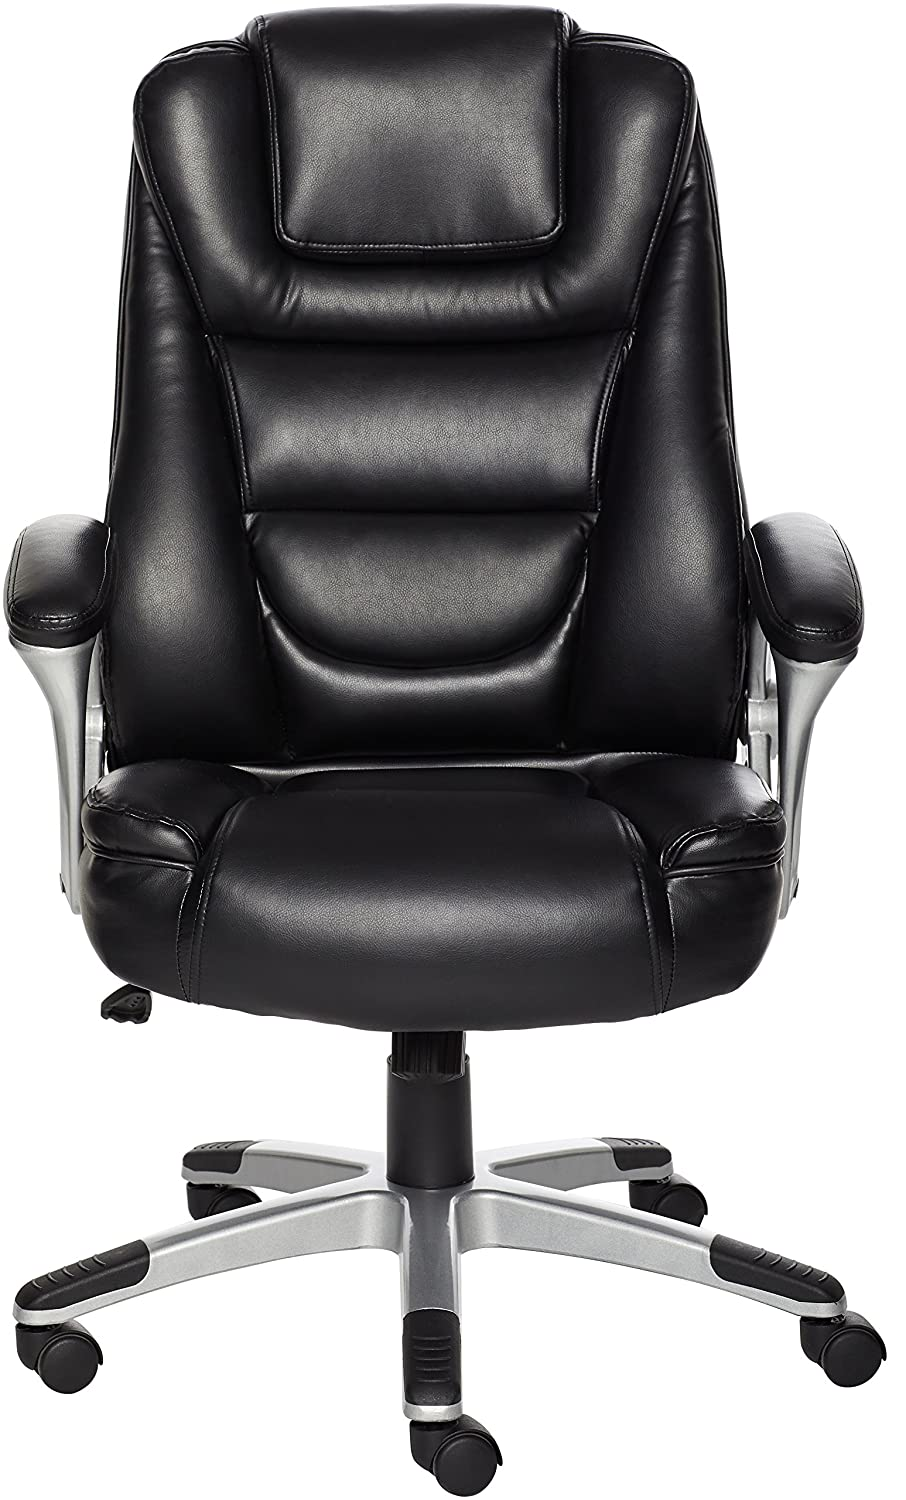 AmazonBasics High-Back Office Desk Chair – Comfortable Leather, Easy Tool-Free Assembly – Black